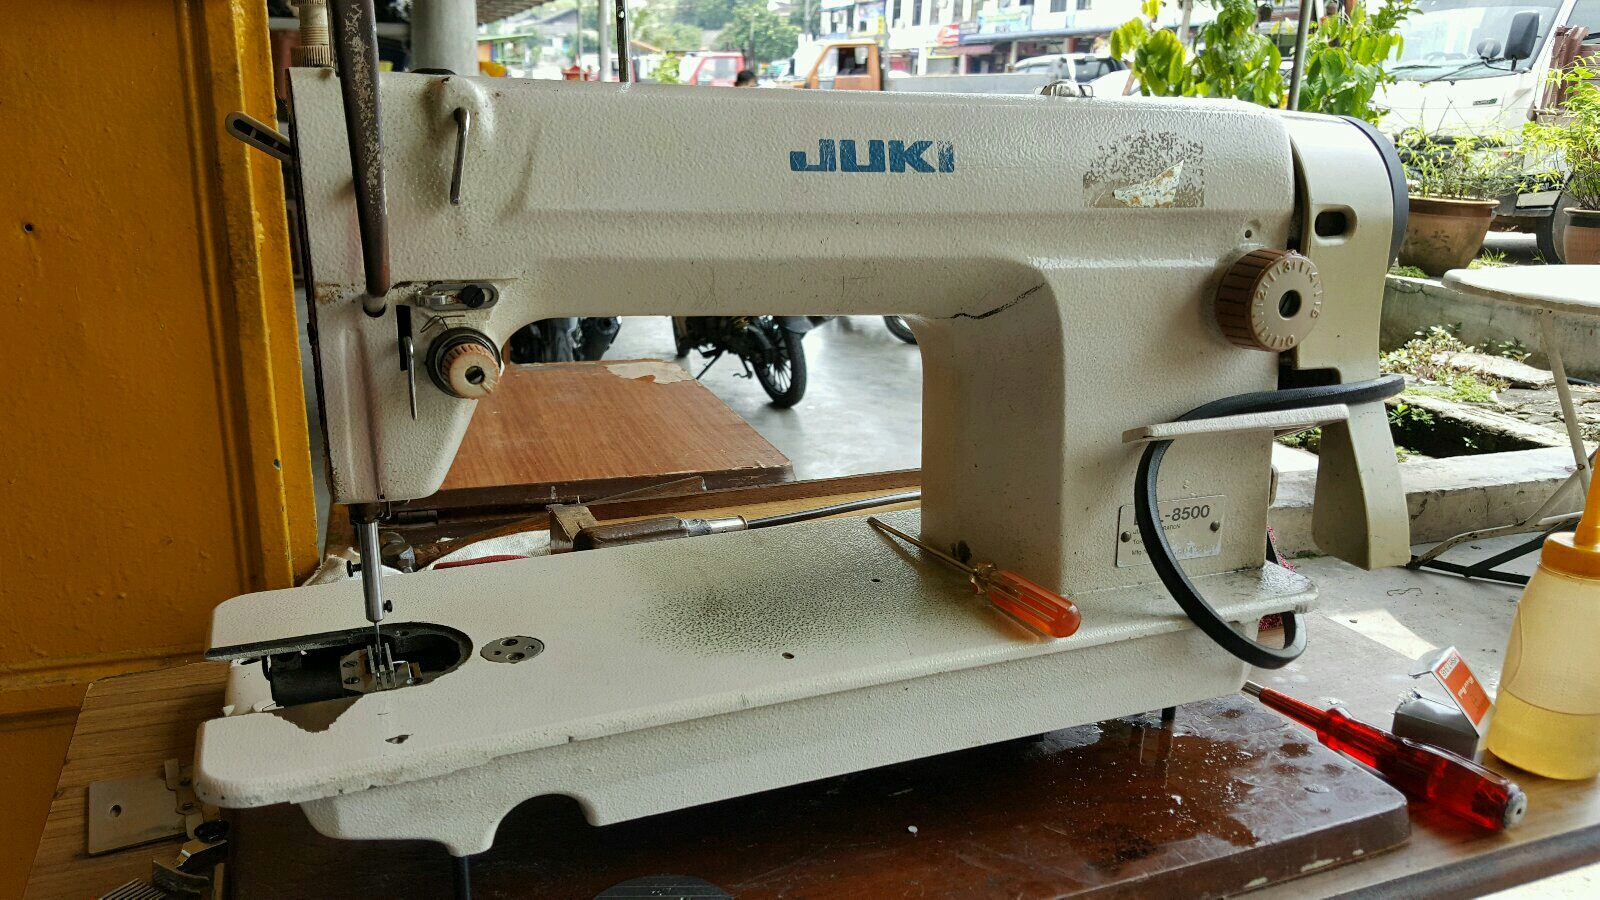 Repai Juki Hi Speed Lockstitch Machine@@@